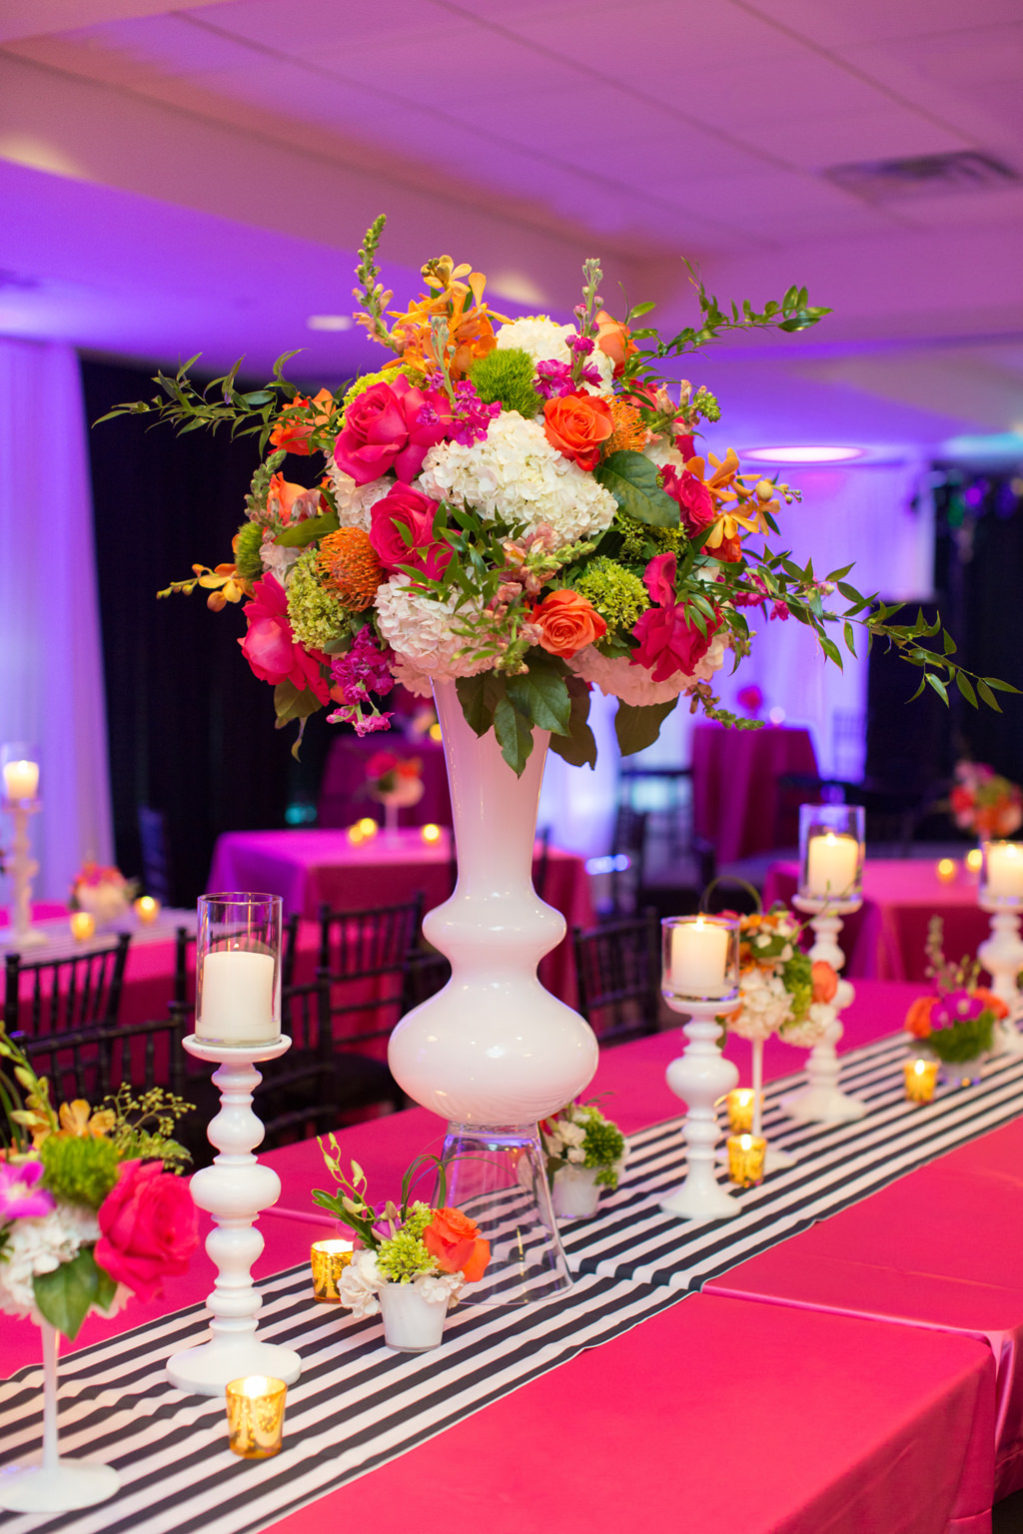 Whimsical Kate Spade Inspired Wedding Reception Decor, Long Table with Hot Pink Tablecloth, Black and White Stripe Table Runner, Tall White Vase with Colorful Pink, Orange, Yellow, White and Green Flower Centerpiece, White Candlesticks | Tampa Bay Wedding Planner Parties A La Carte